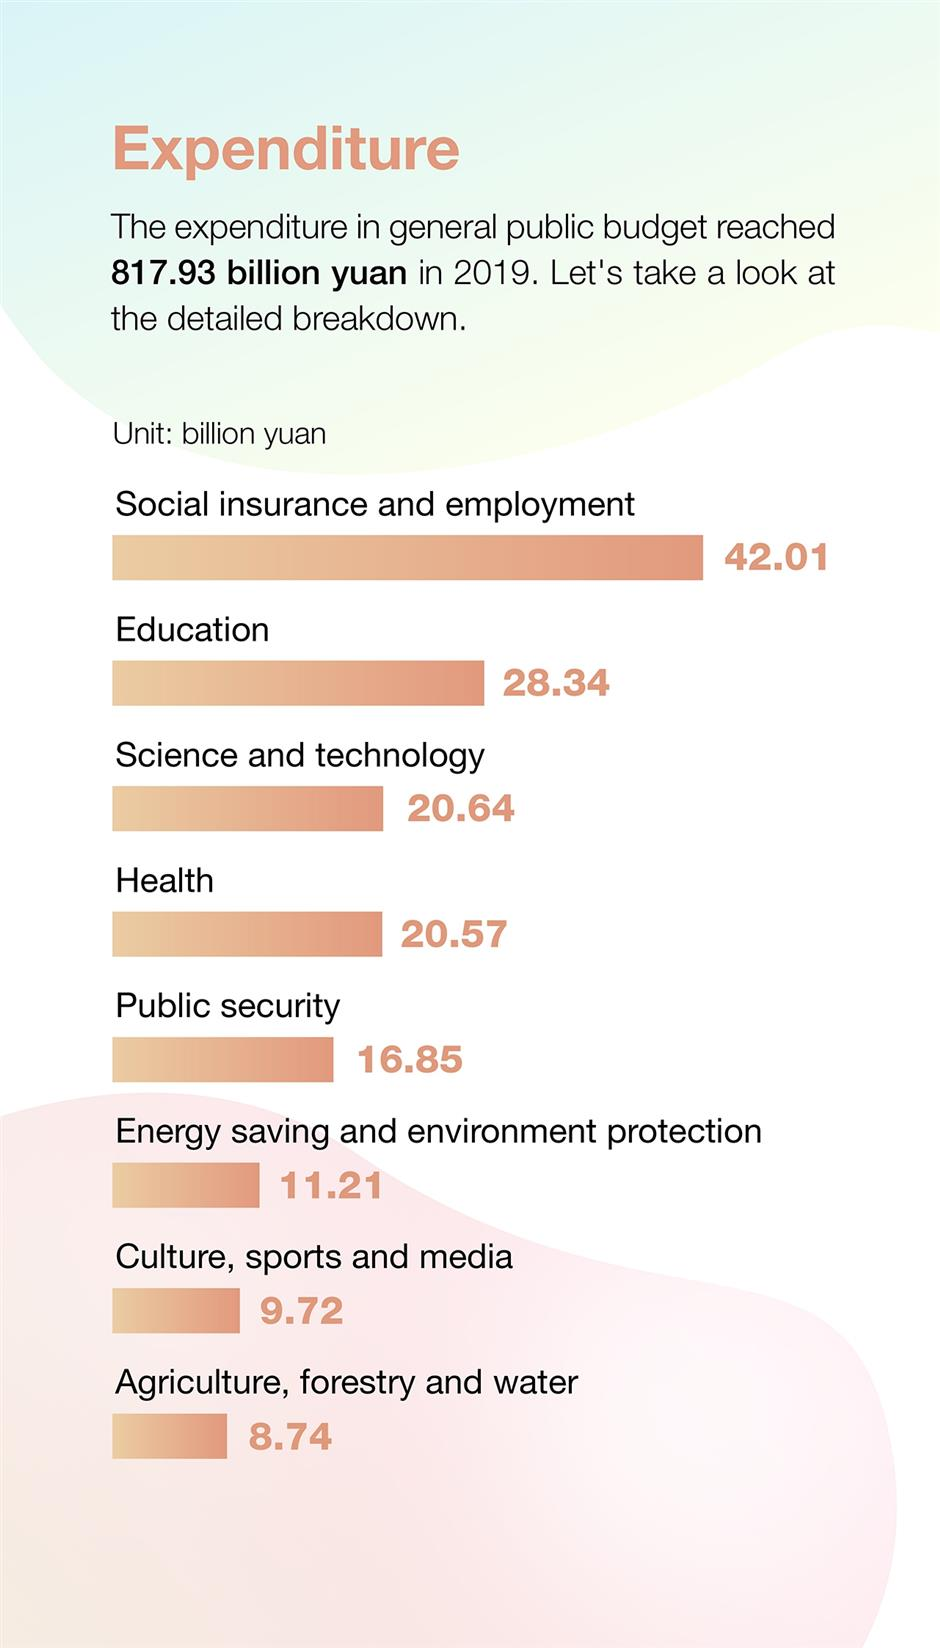 Fast statistics of Lianghui: city's revenue and expenditure in 2019